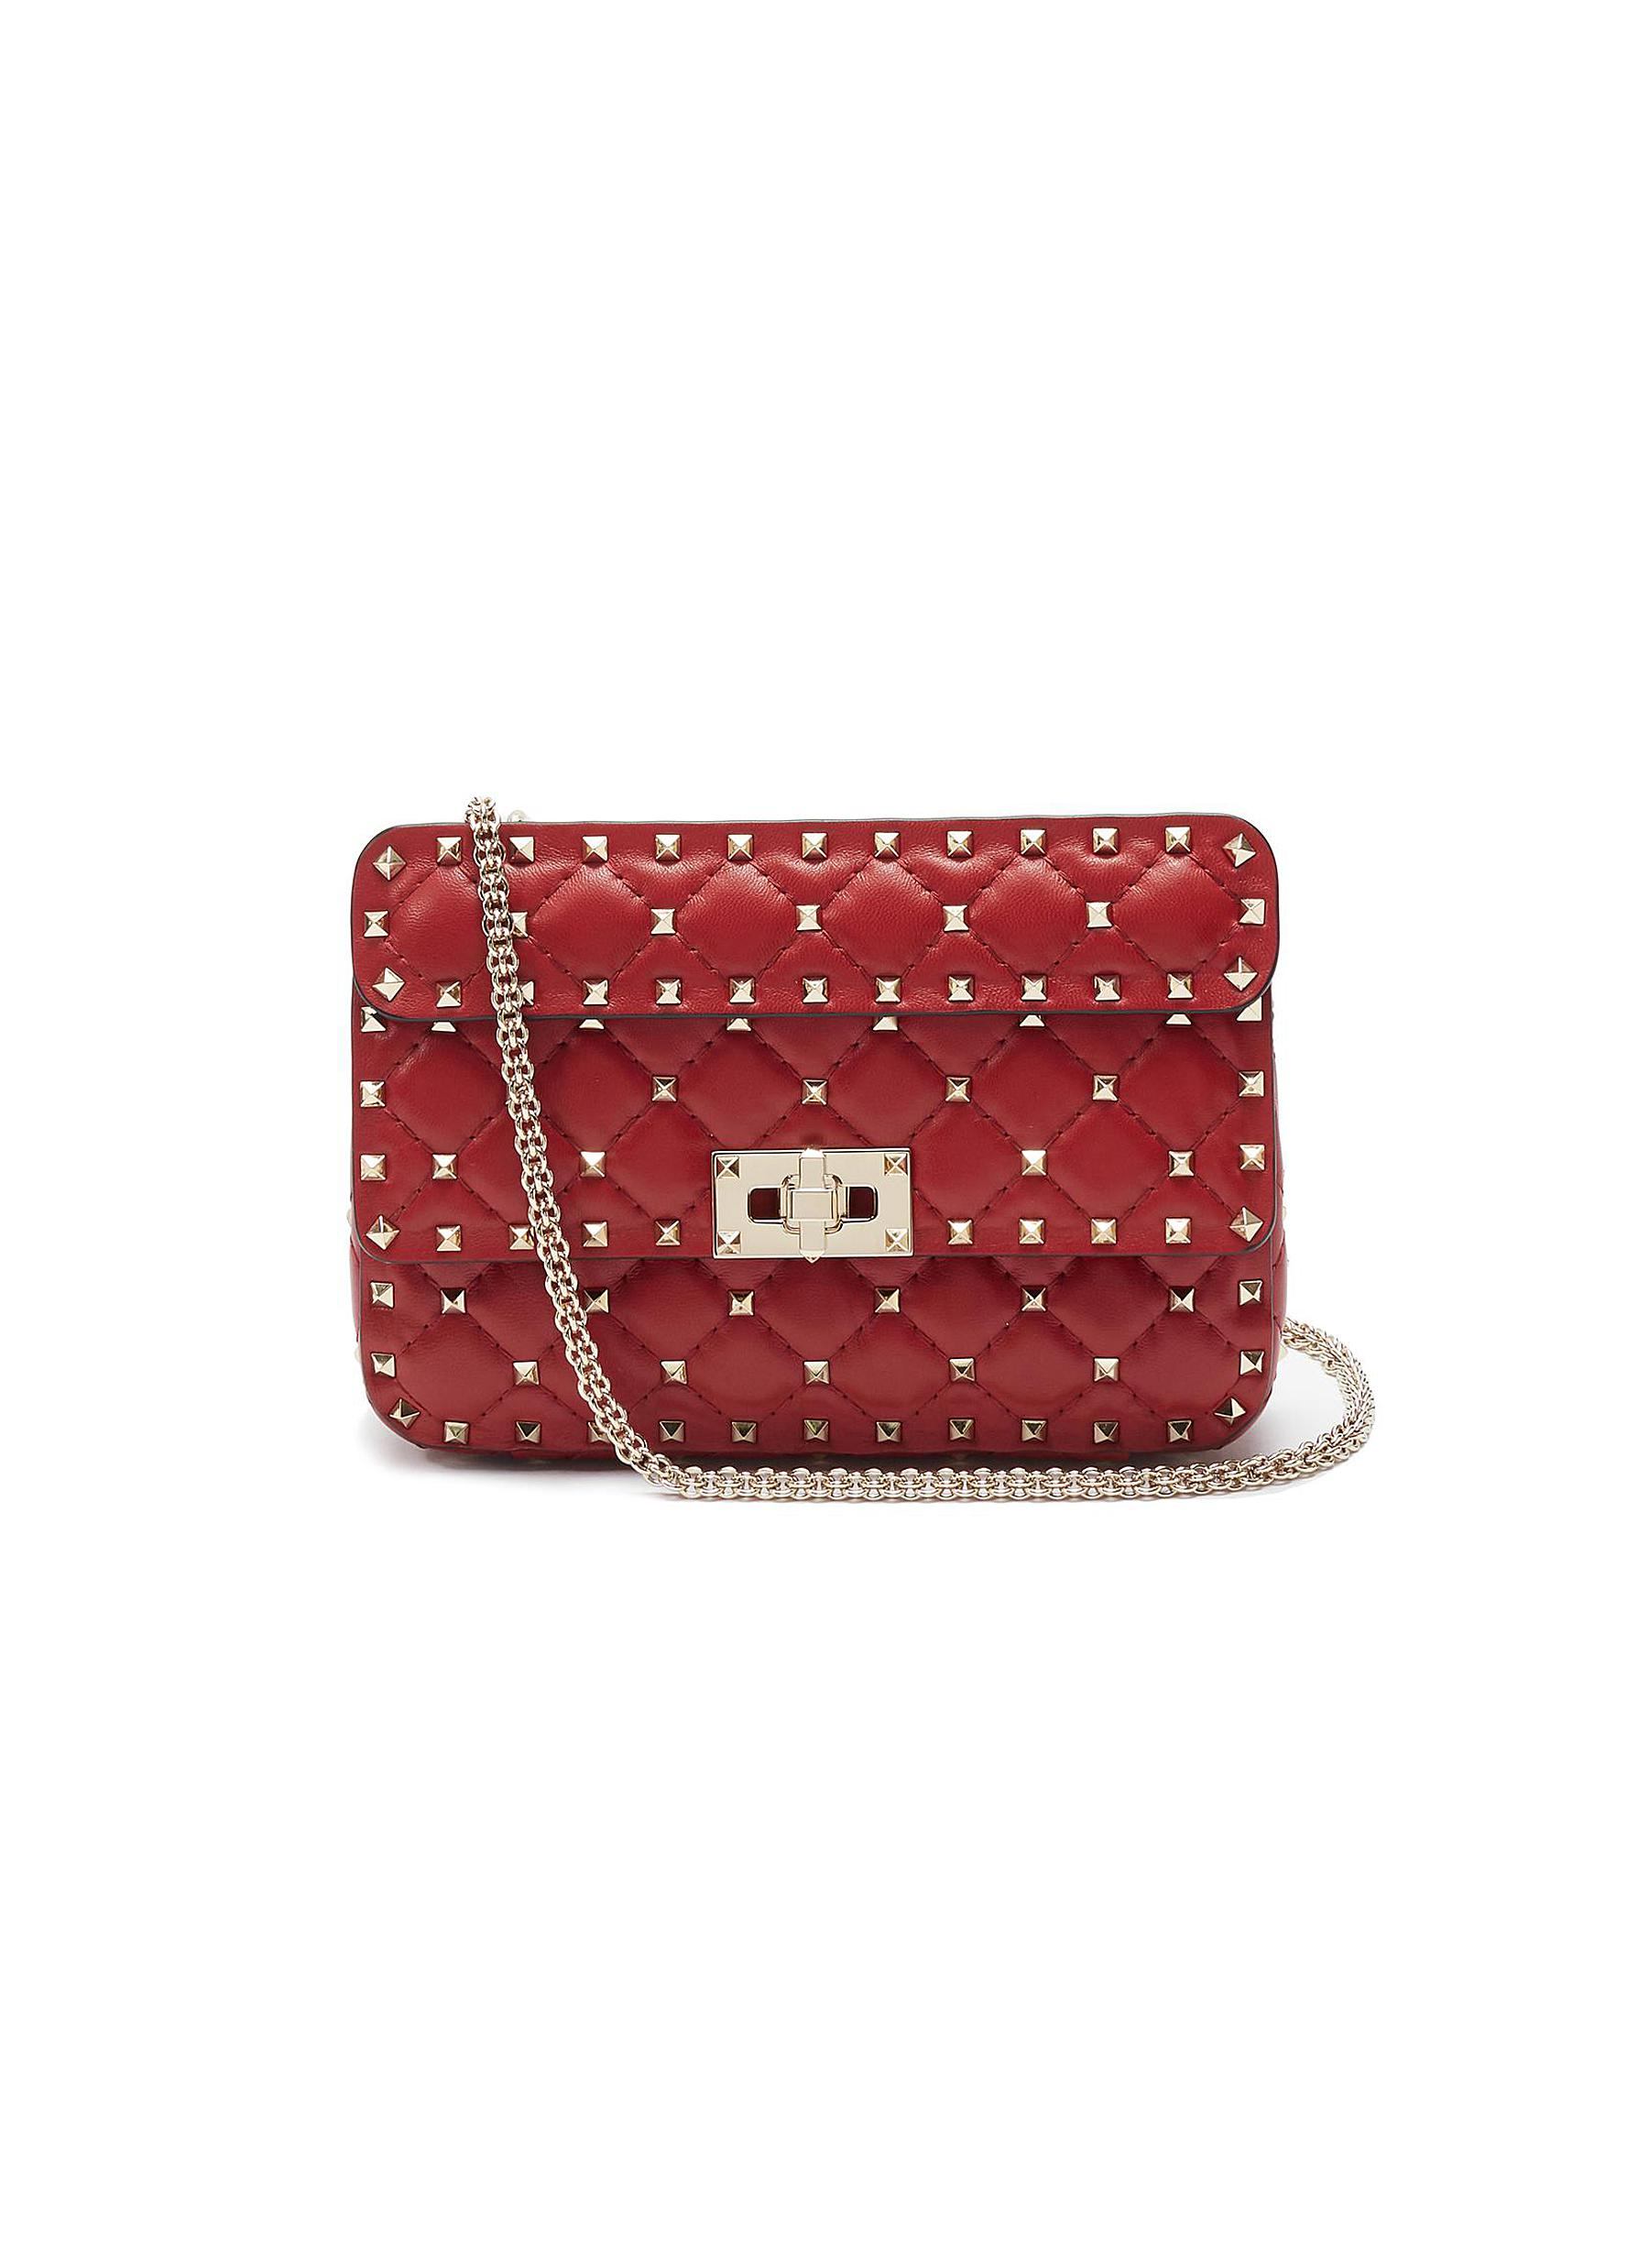 9b4445c1d7 VALENTINO | 'Rockstud Spike' small quilted leather shoulder bag ...